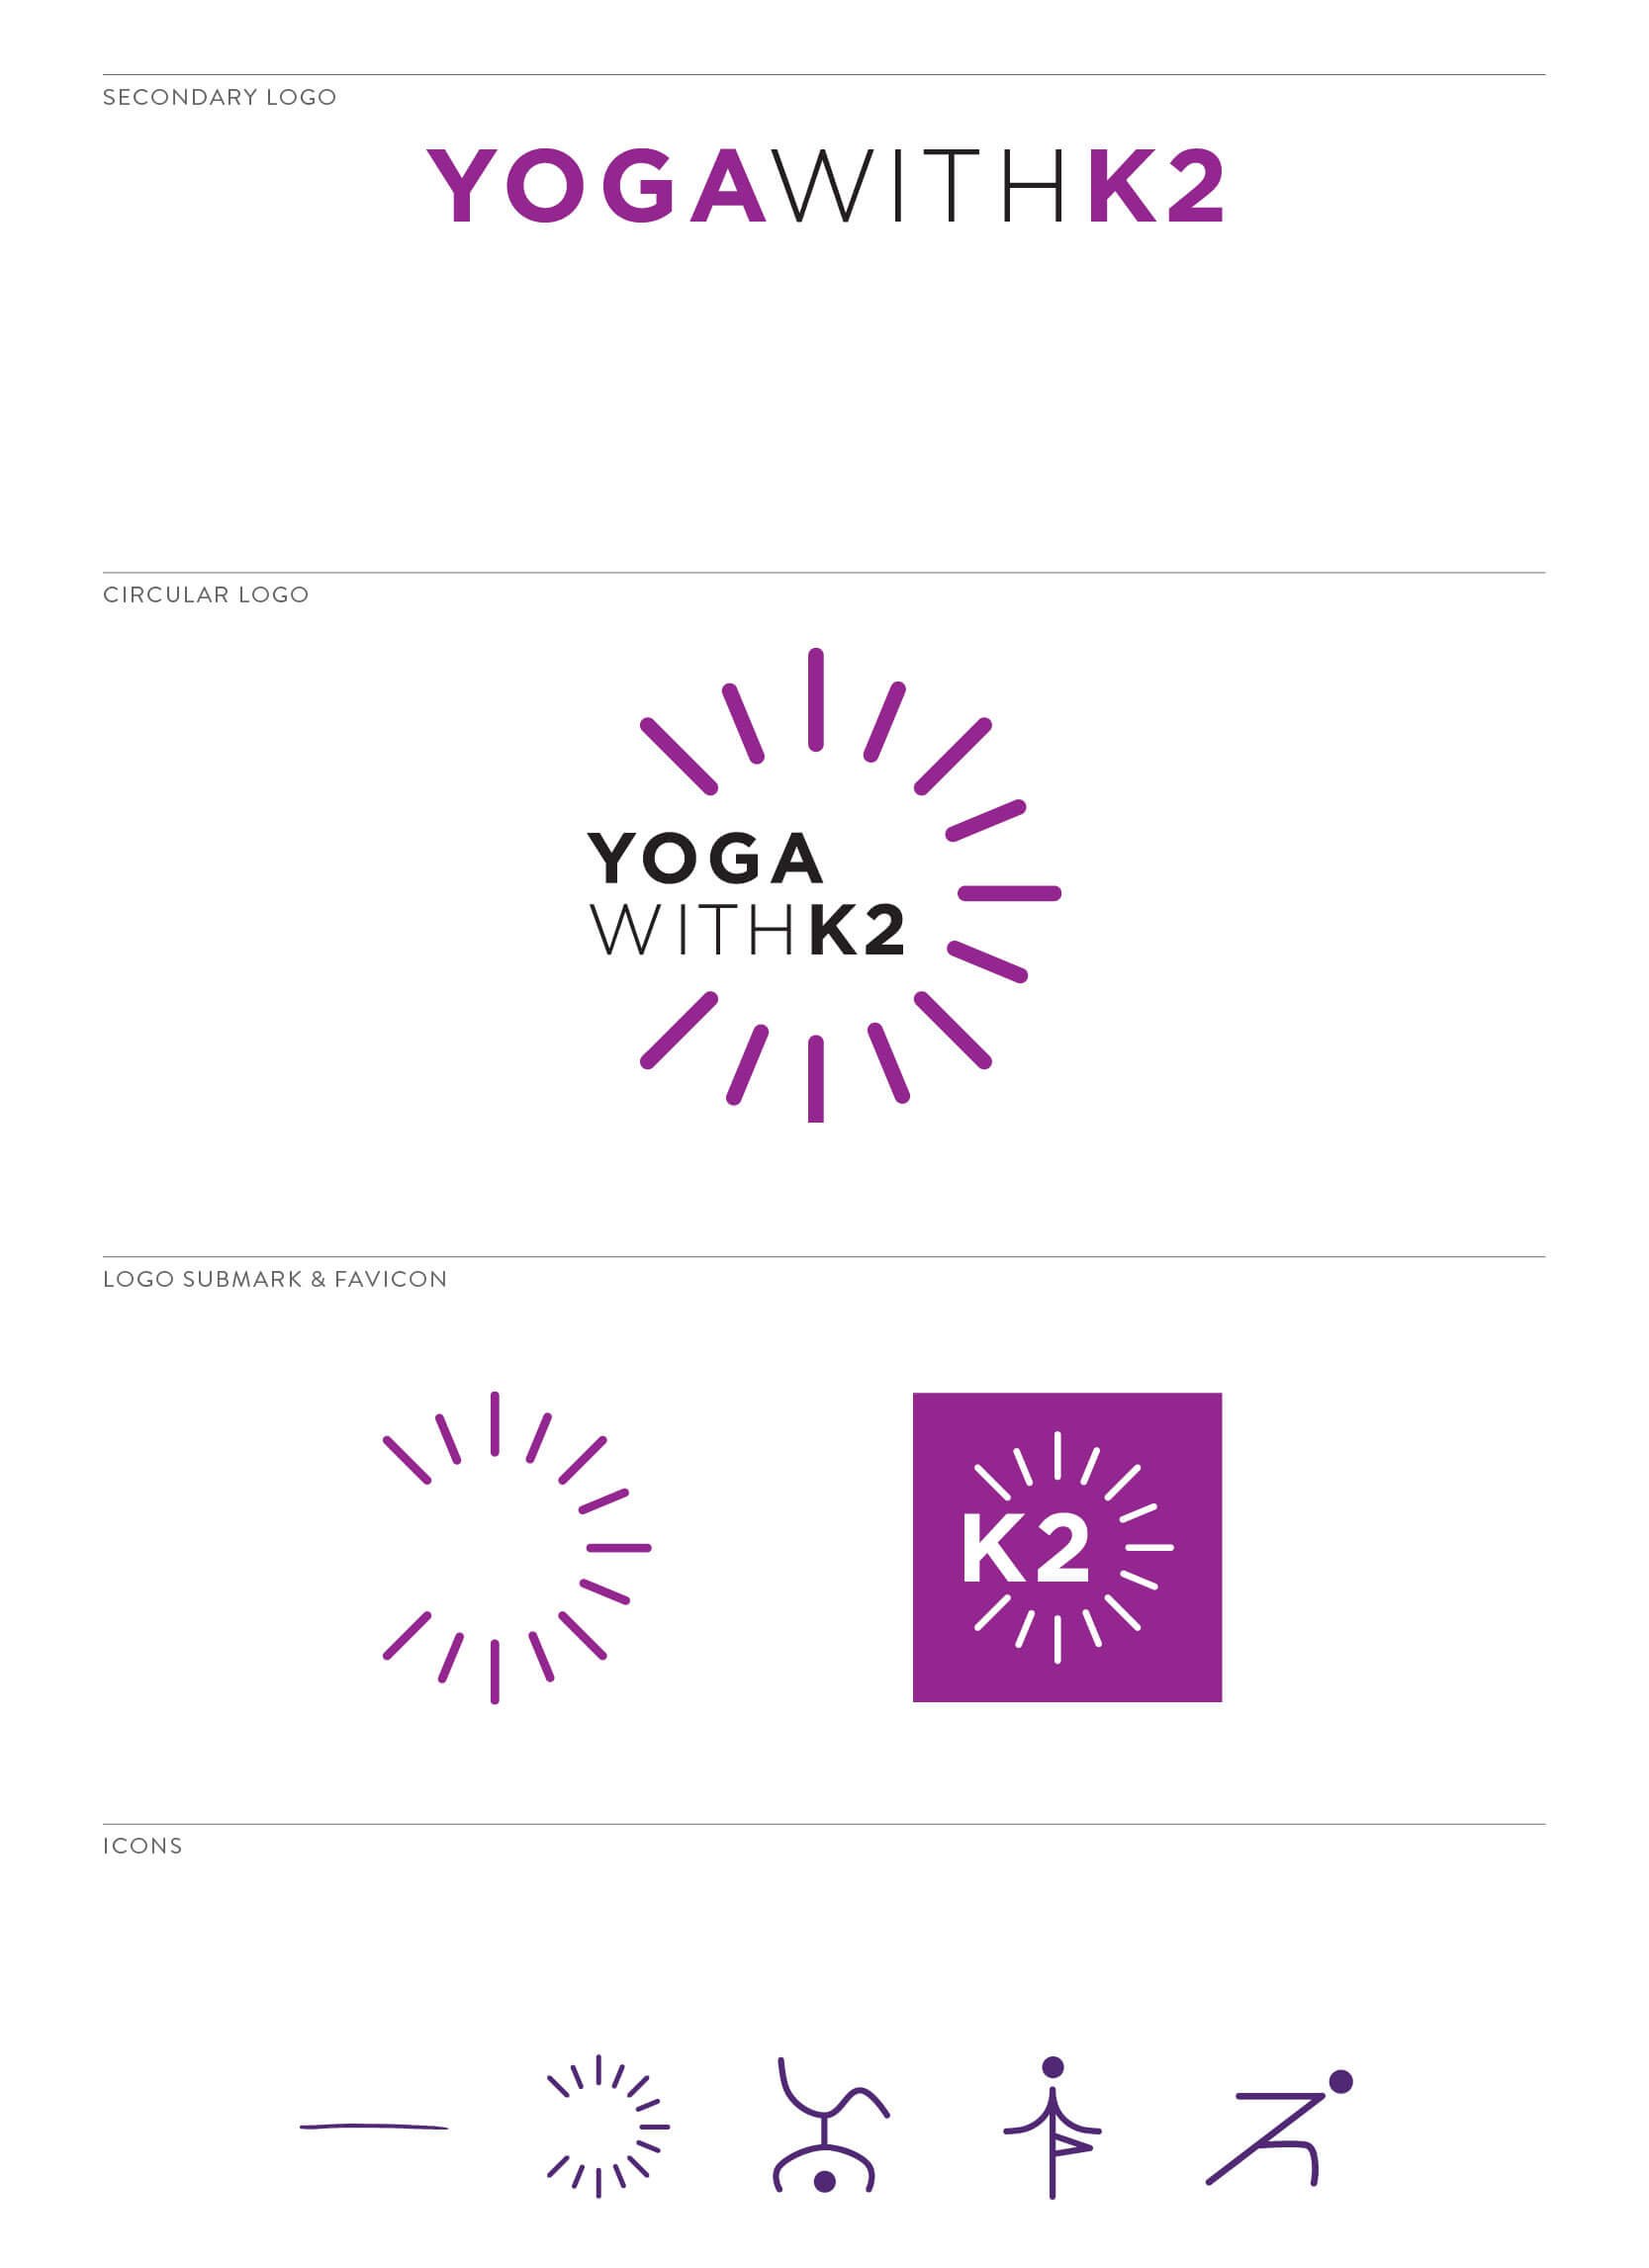 Yoga with K2 Submarks and Icons by The Qurious Effect, a brand and Squarespace web design studio for unstoppable entrepreneurs